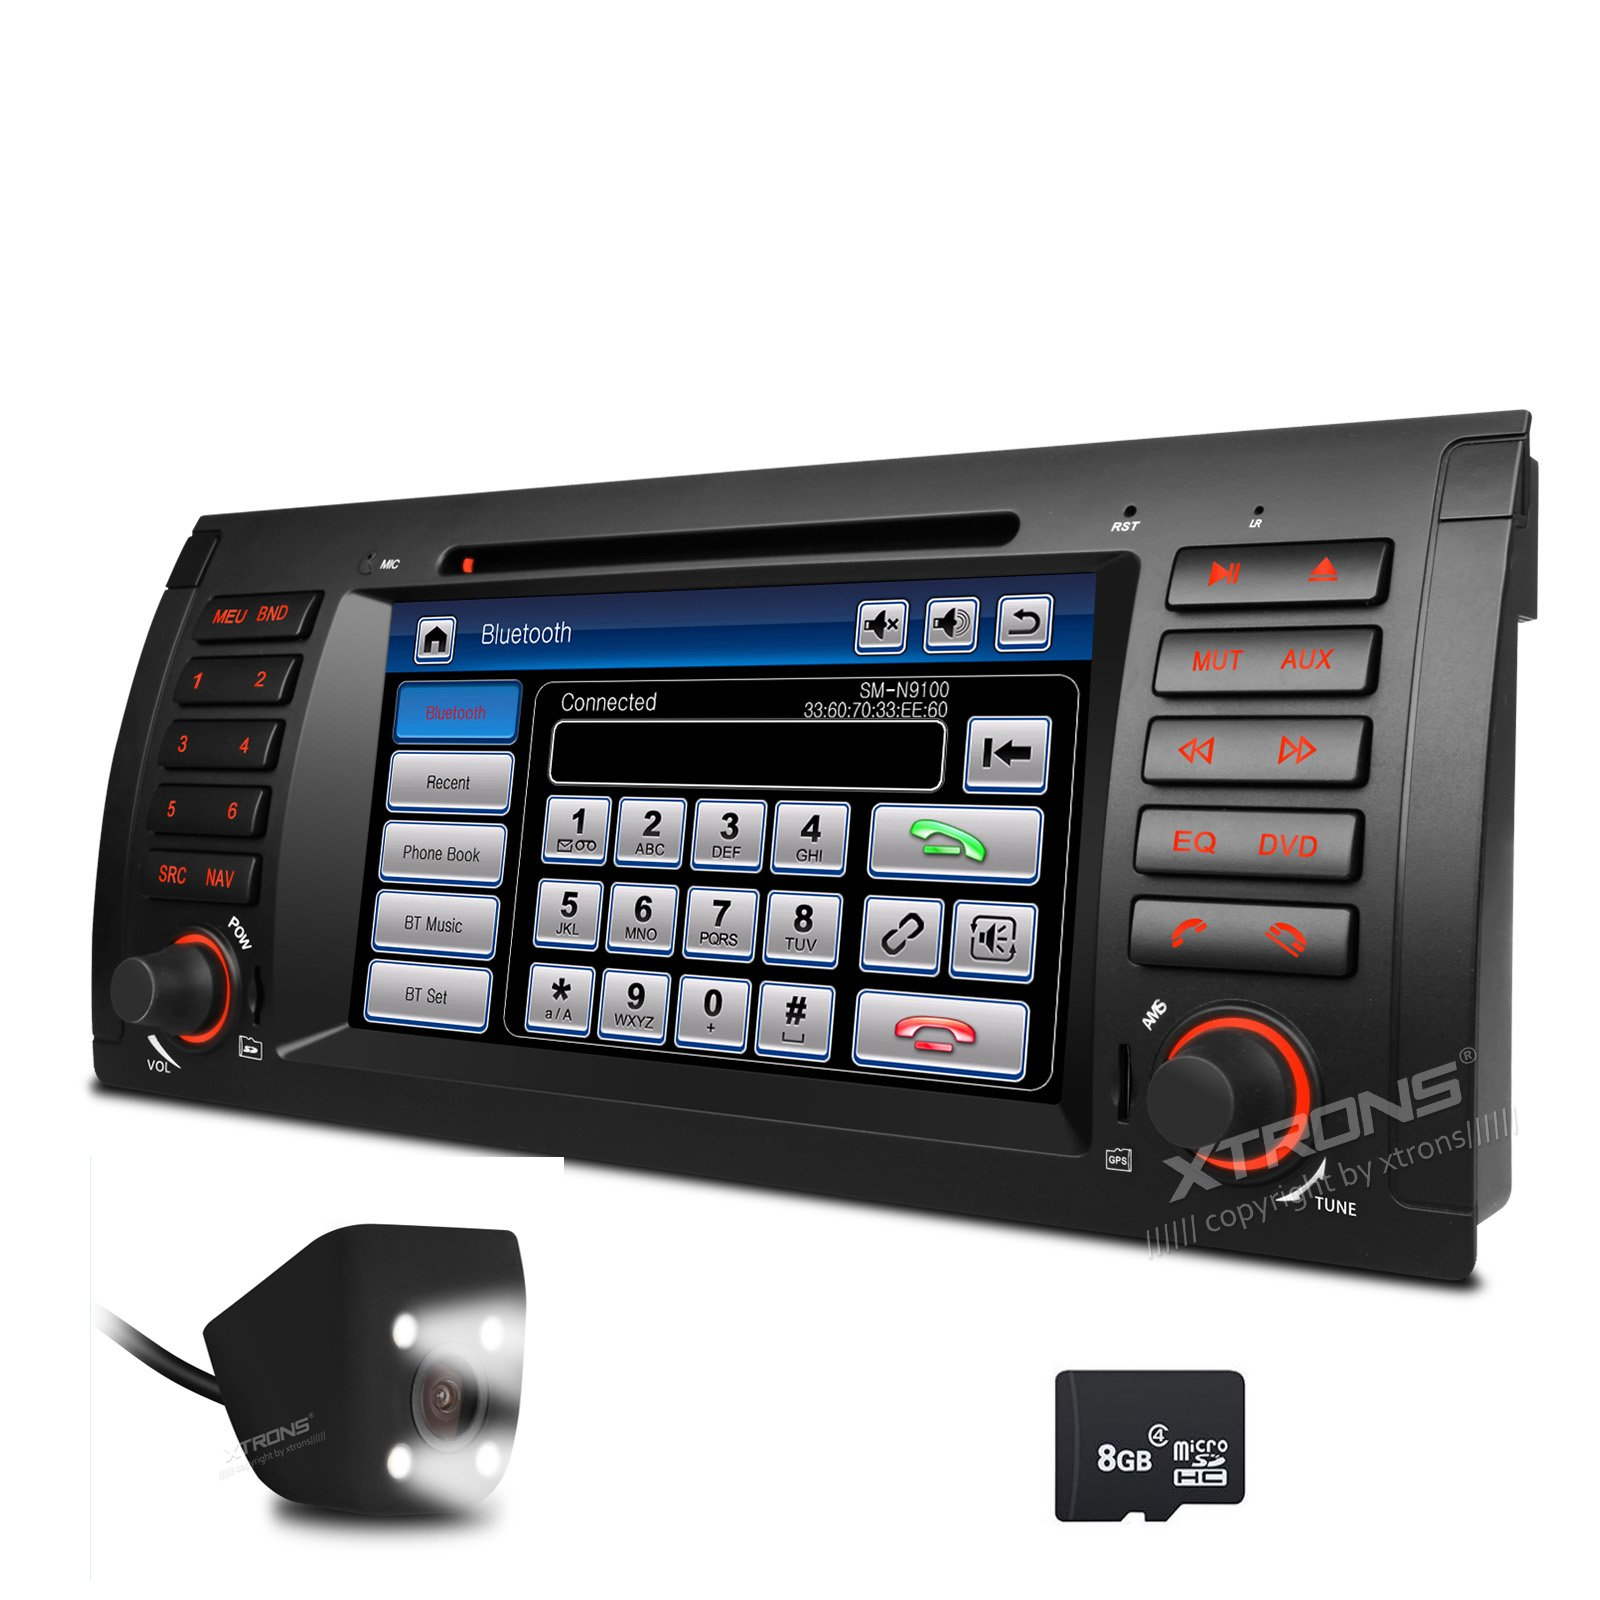 XTRONS 7 Inch HD Digital Touch Screen Car Stereo Radio In-Dash DVD Player with GPS CANbus Screen Mirroring Function for BMW E53 X5 Navigation Map Card & Reversing Camera Included by XTRONS (Image #1)